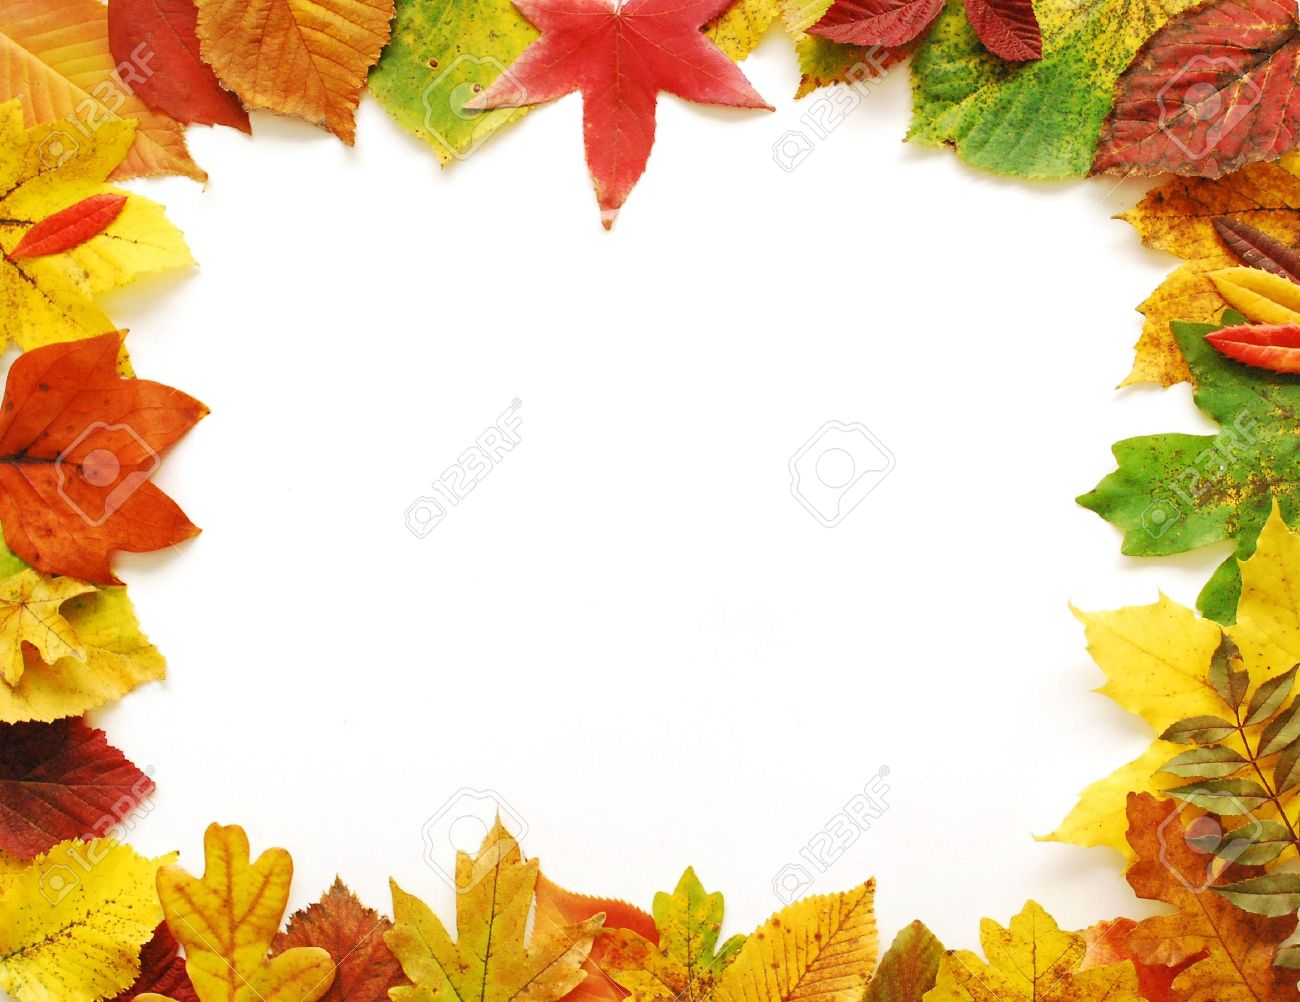 Autumn Leaves Frame Stock Photo - 5826259